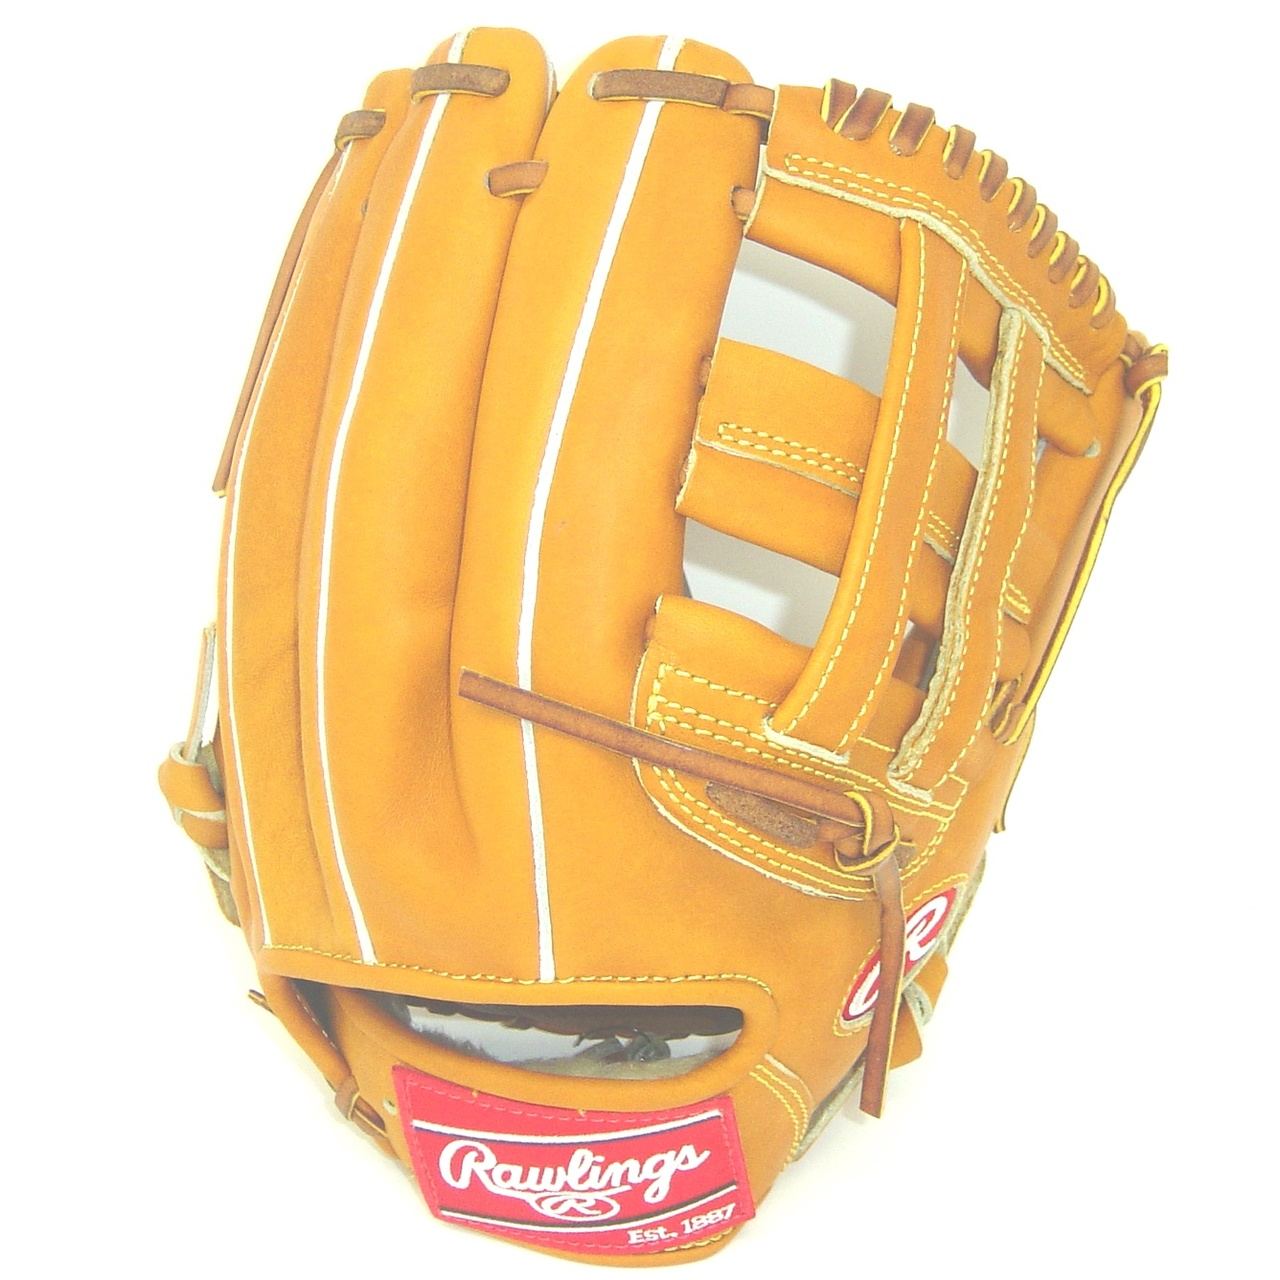 96b63a97887 Heart of the Hide Leather is Handcrafted from the top 5-percent of steer hides  Rawlings Heart of Hide PRO200-6 Baseball Glove 11.5 Right Hand Throw ...